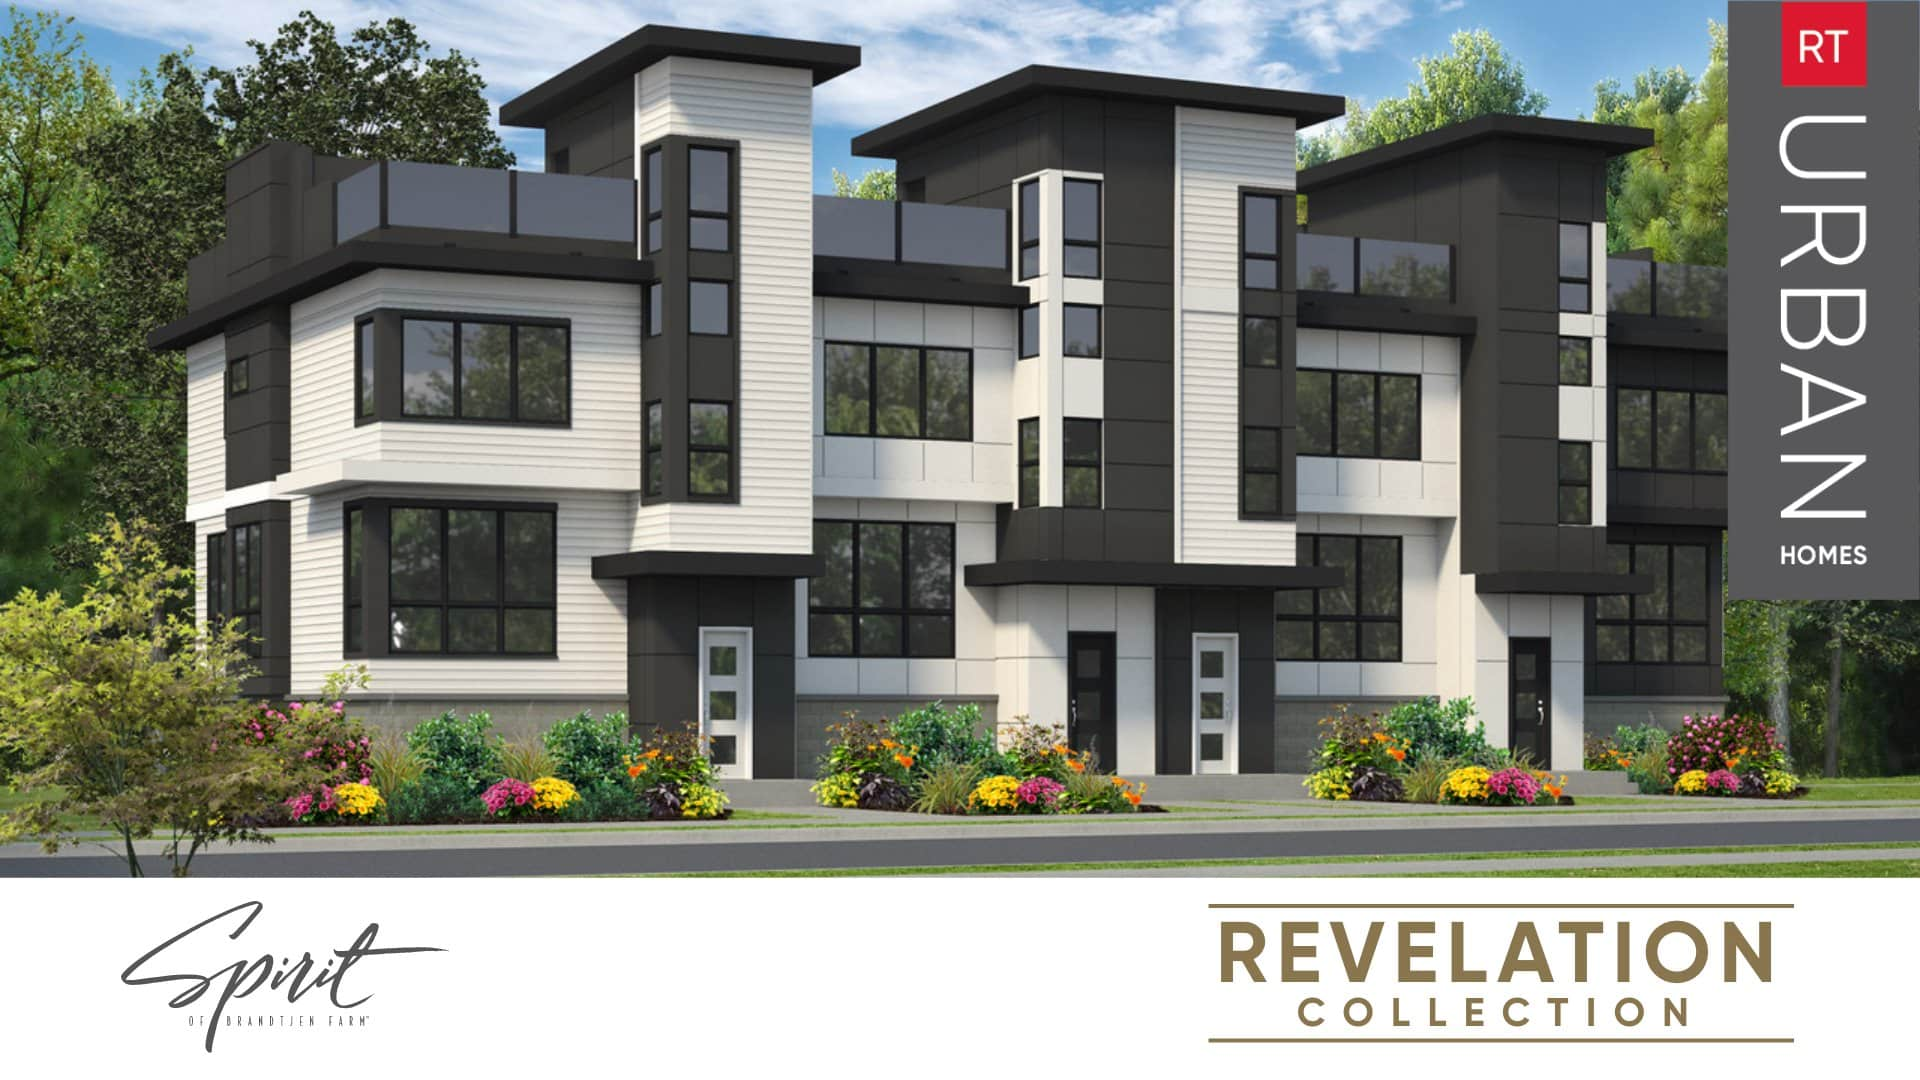 Introducing The Revelation Collection Attached Townhomes From RT Urban Homes